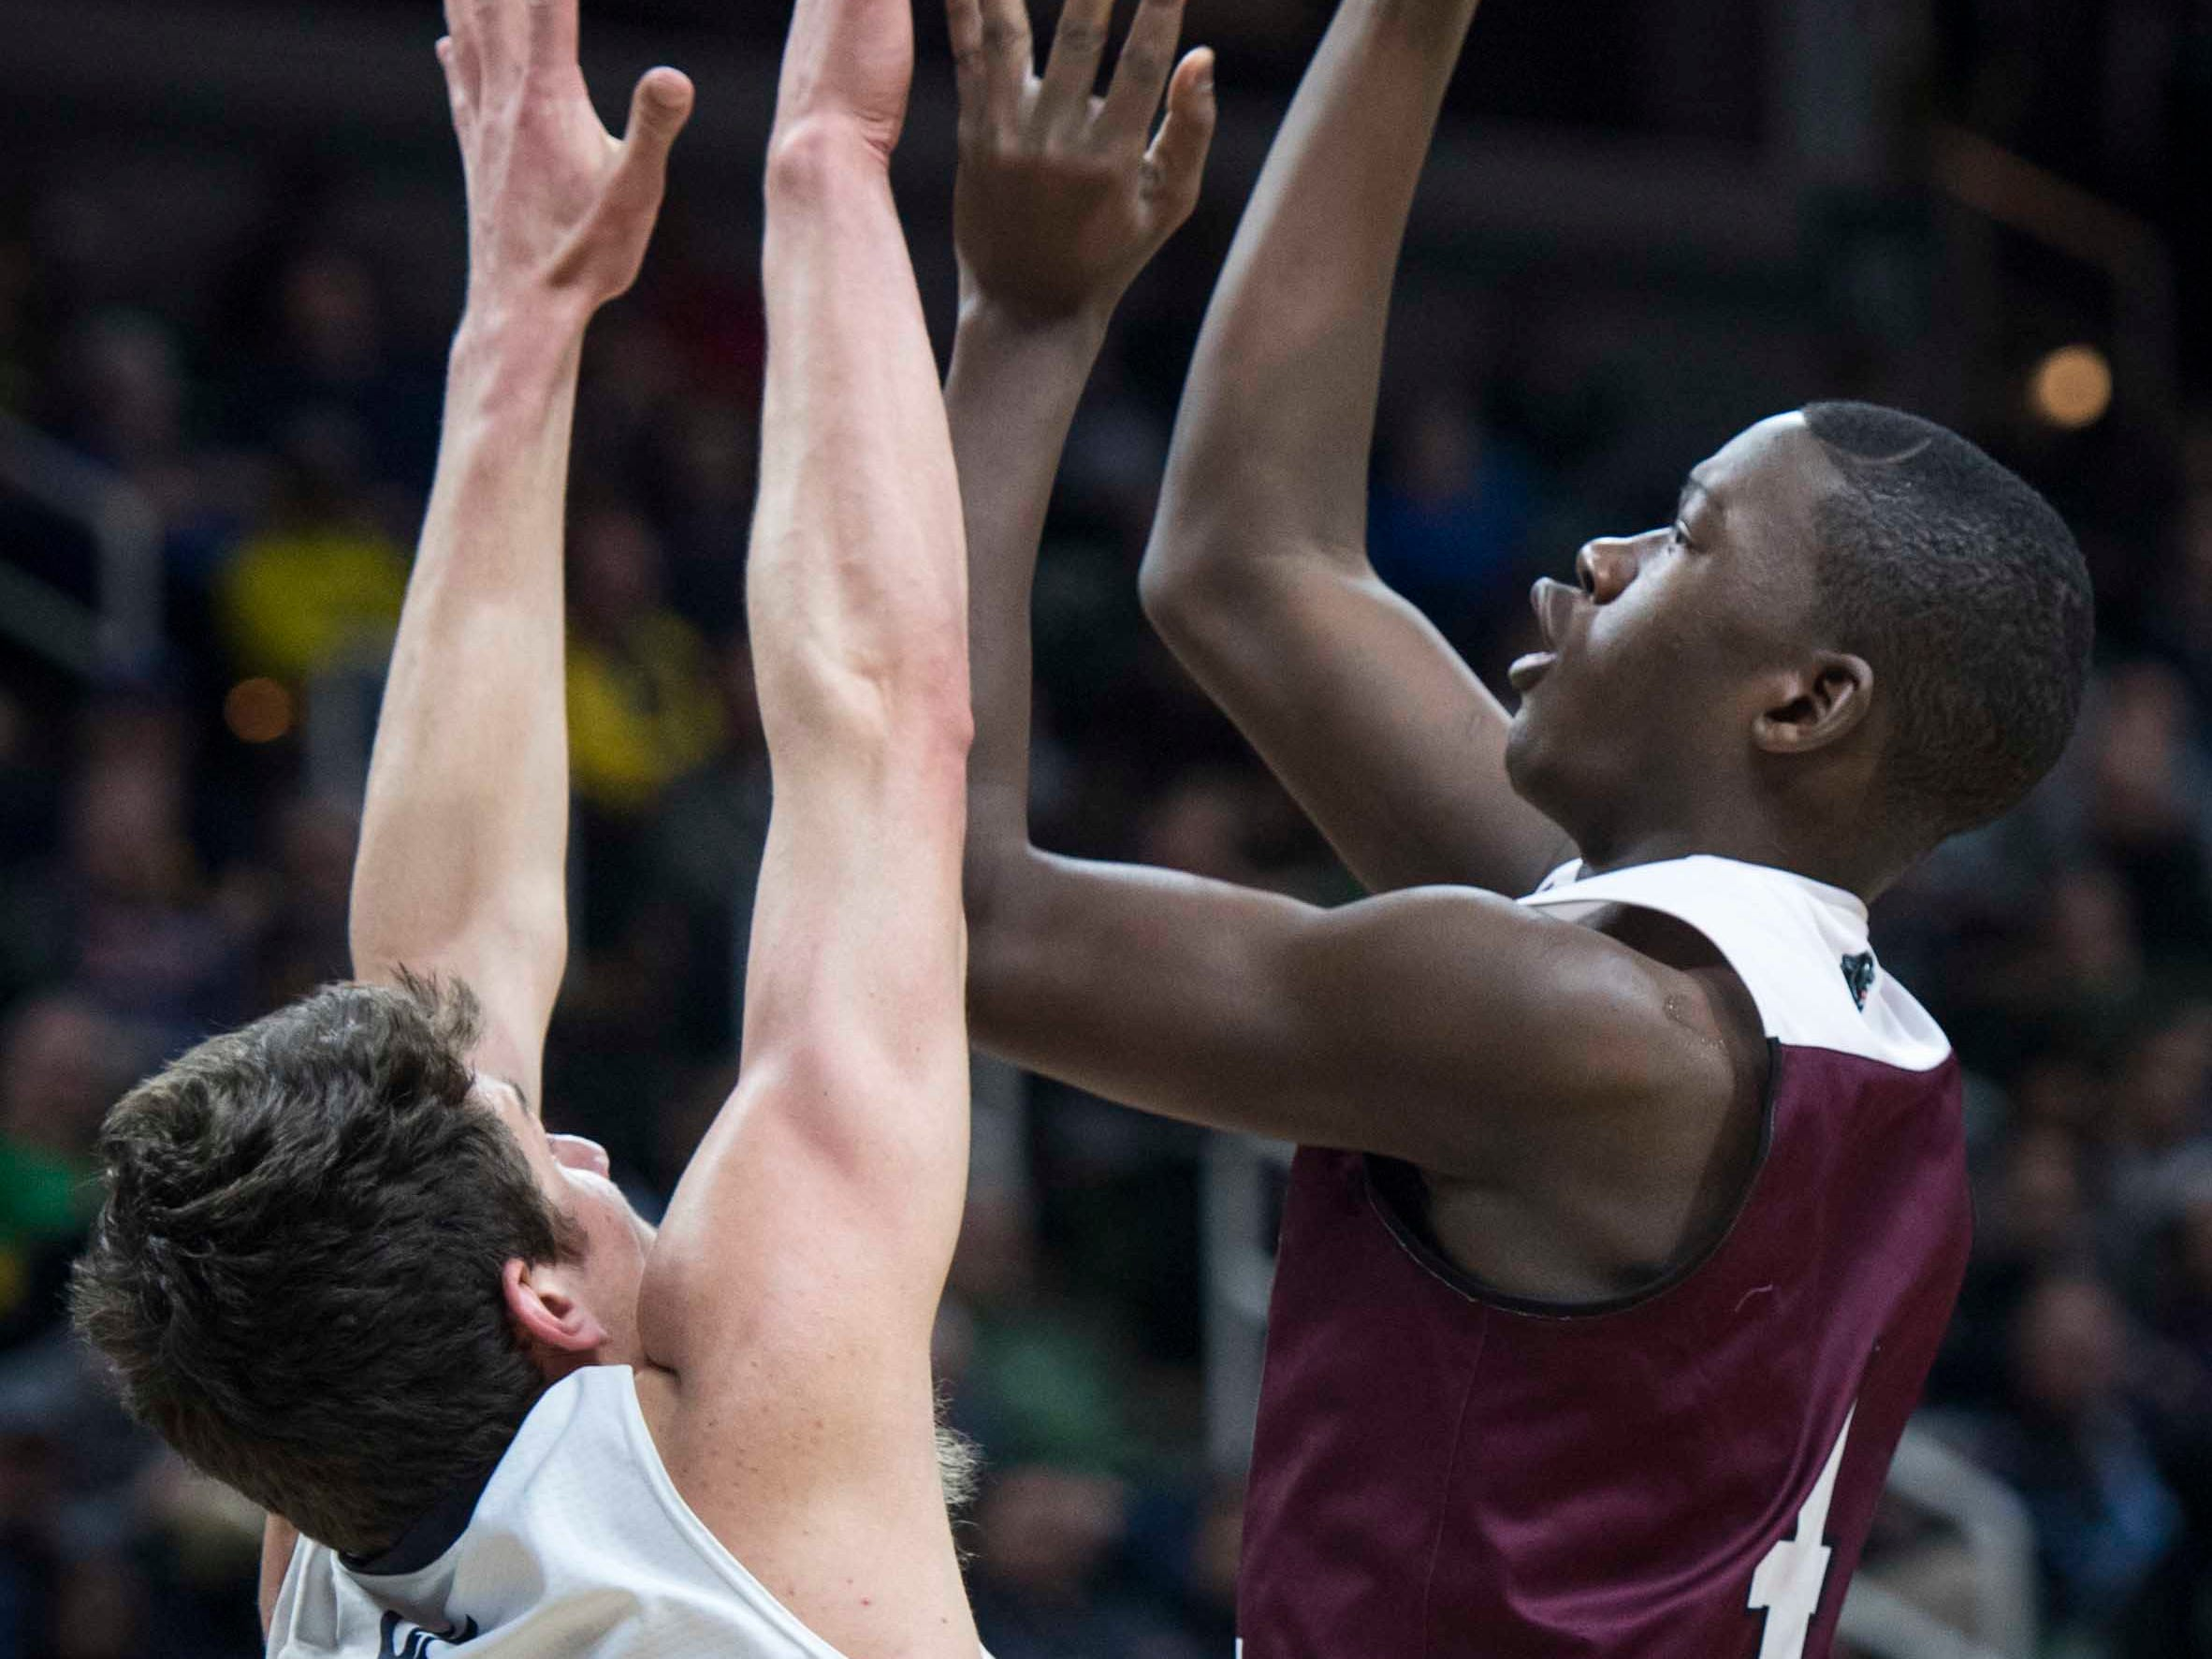 River Rouge's Legend Parrish shoots over Hudsonville Unity Christian's T.J. VanKoevering in the first half.